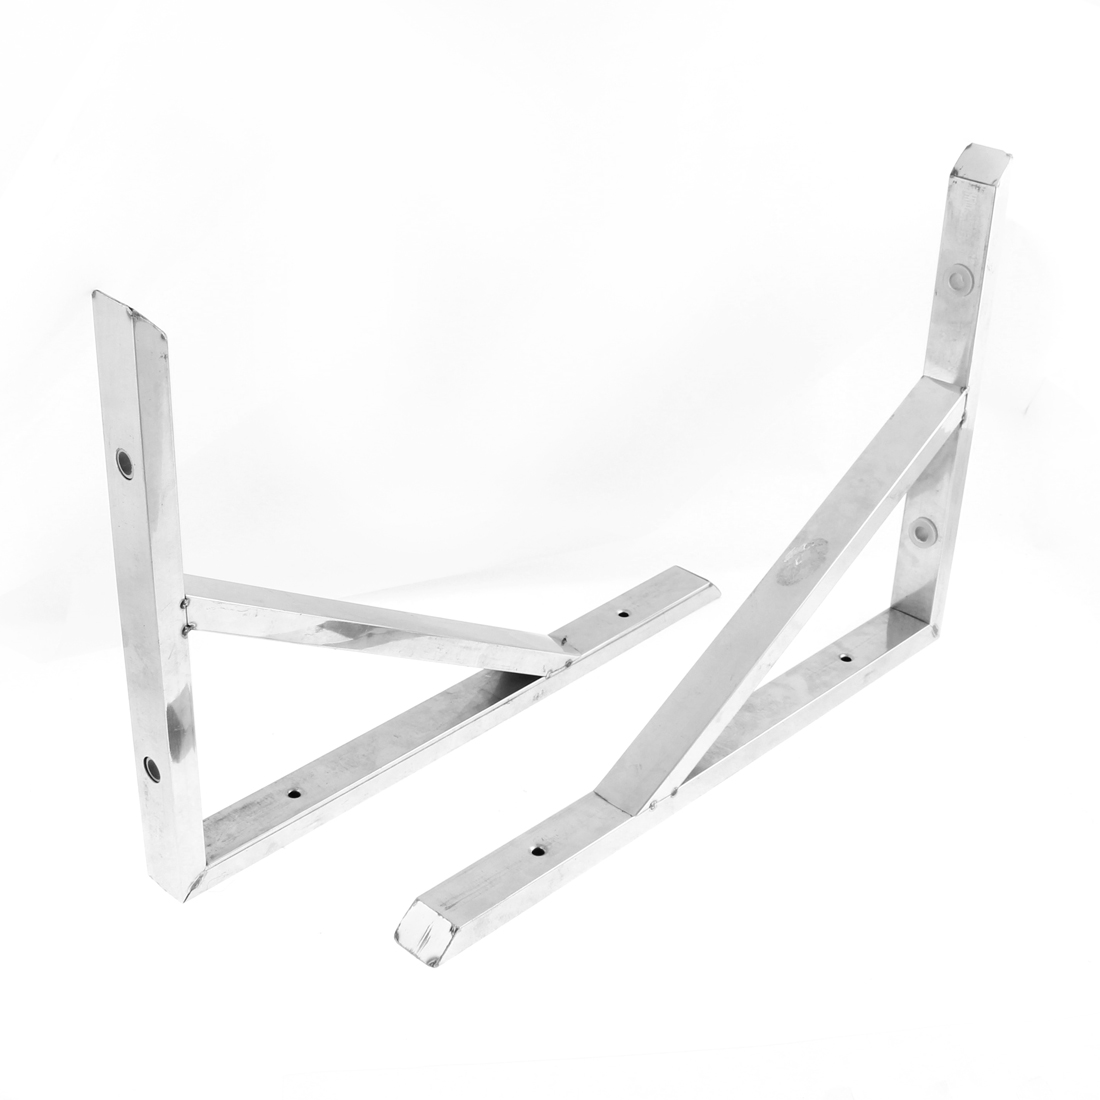 Stainless Steel 90 Degree Angle Holder Shelf Bracket Support 14 Inches Long 2 Pcs